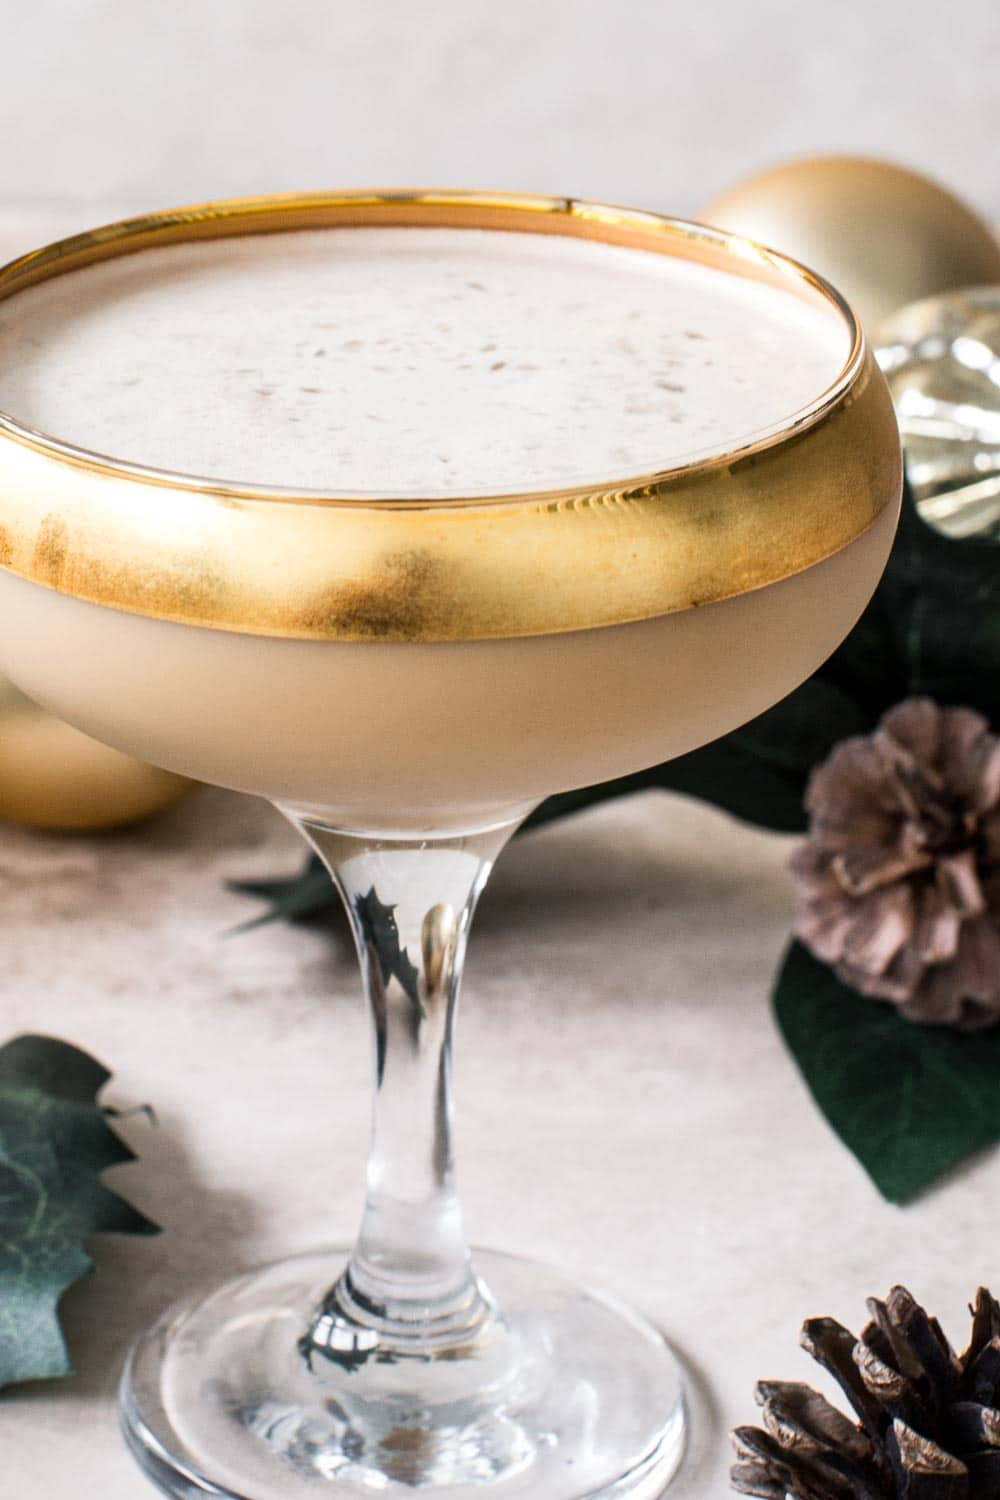 Toasted almond cocktail in a glass with a gold rim.